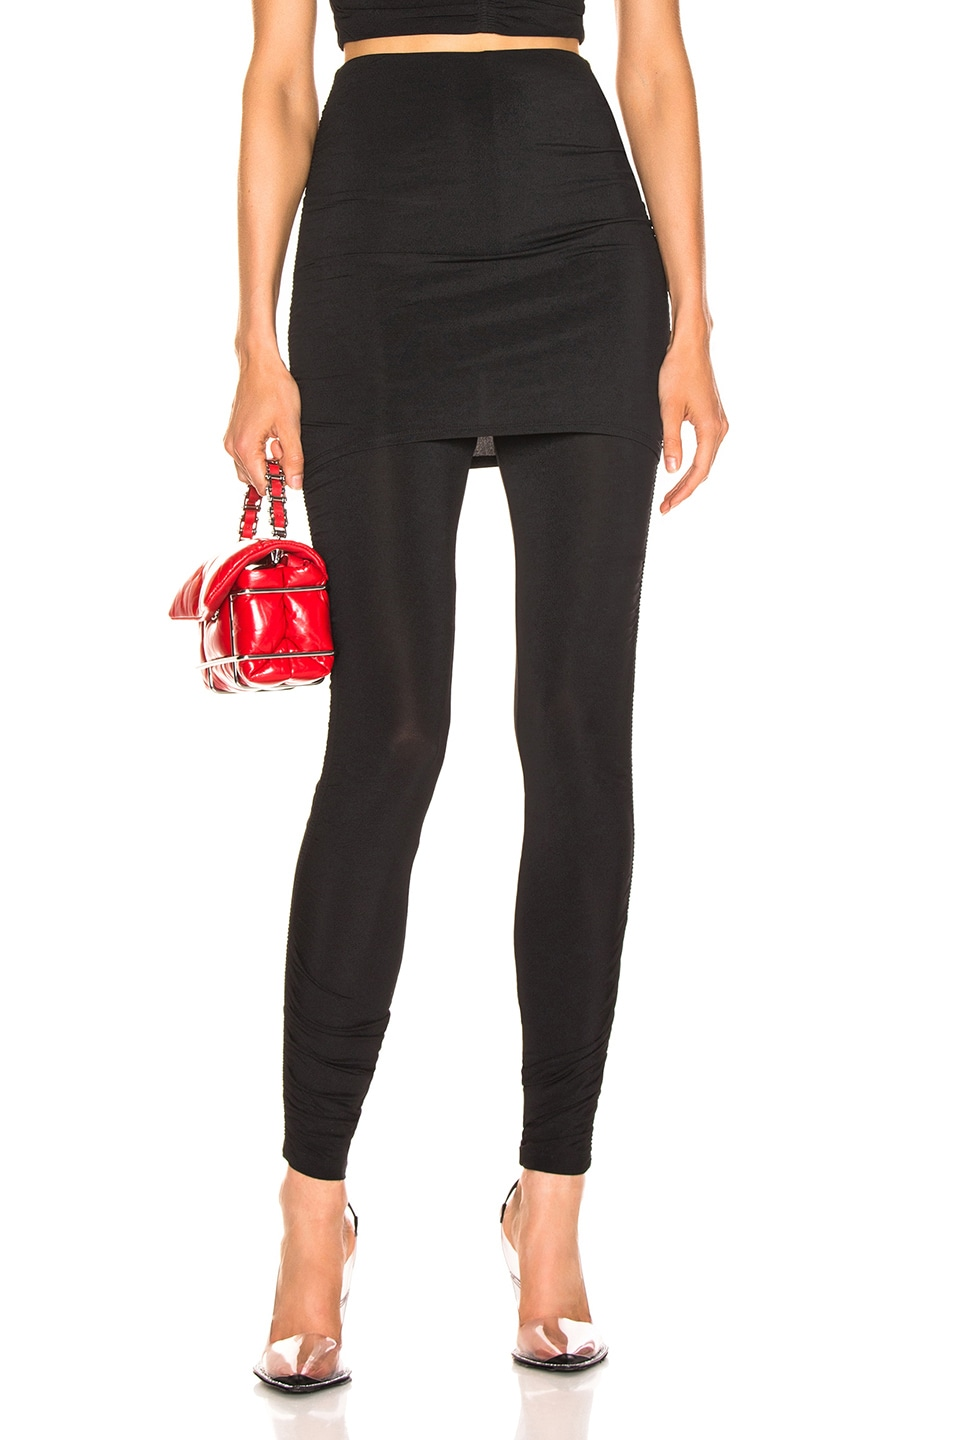 Image 1 of T by Alexander Wang Crepe Twist Legging in Black